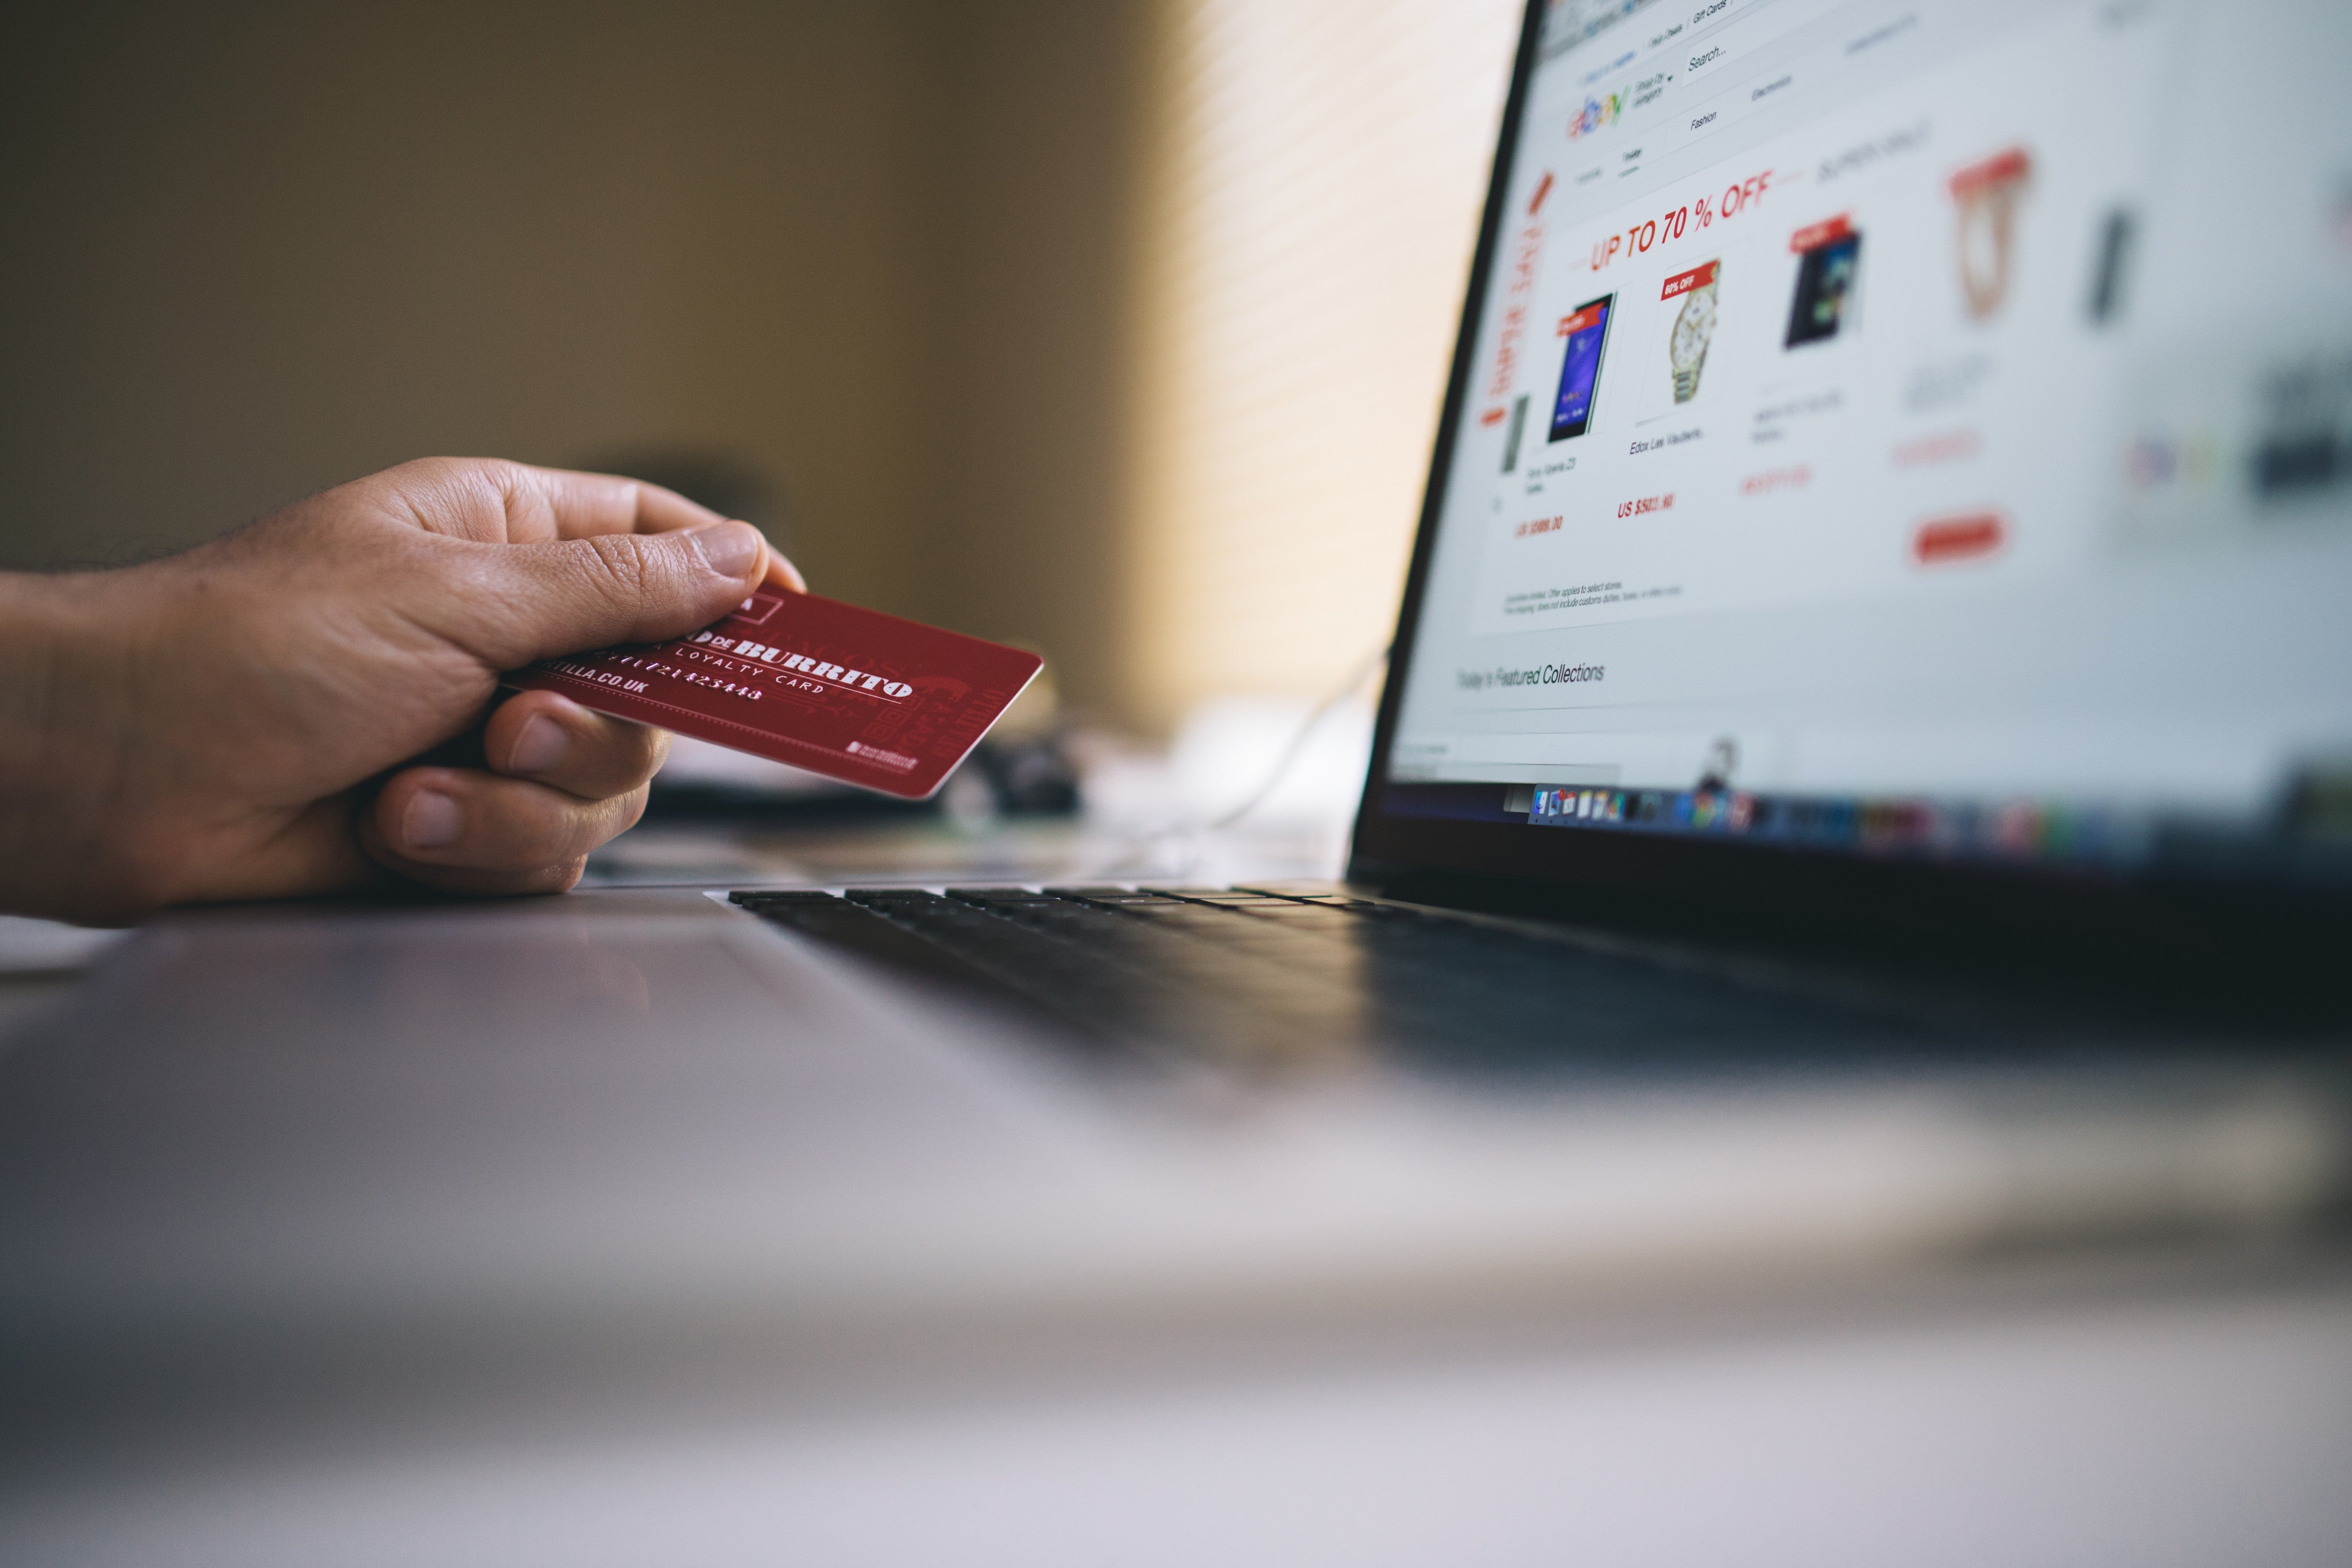 What You Need to Take Note of When Shopping Online